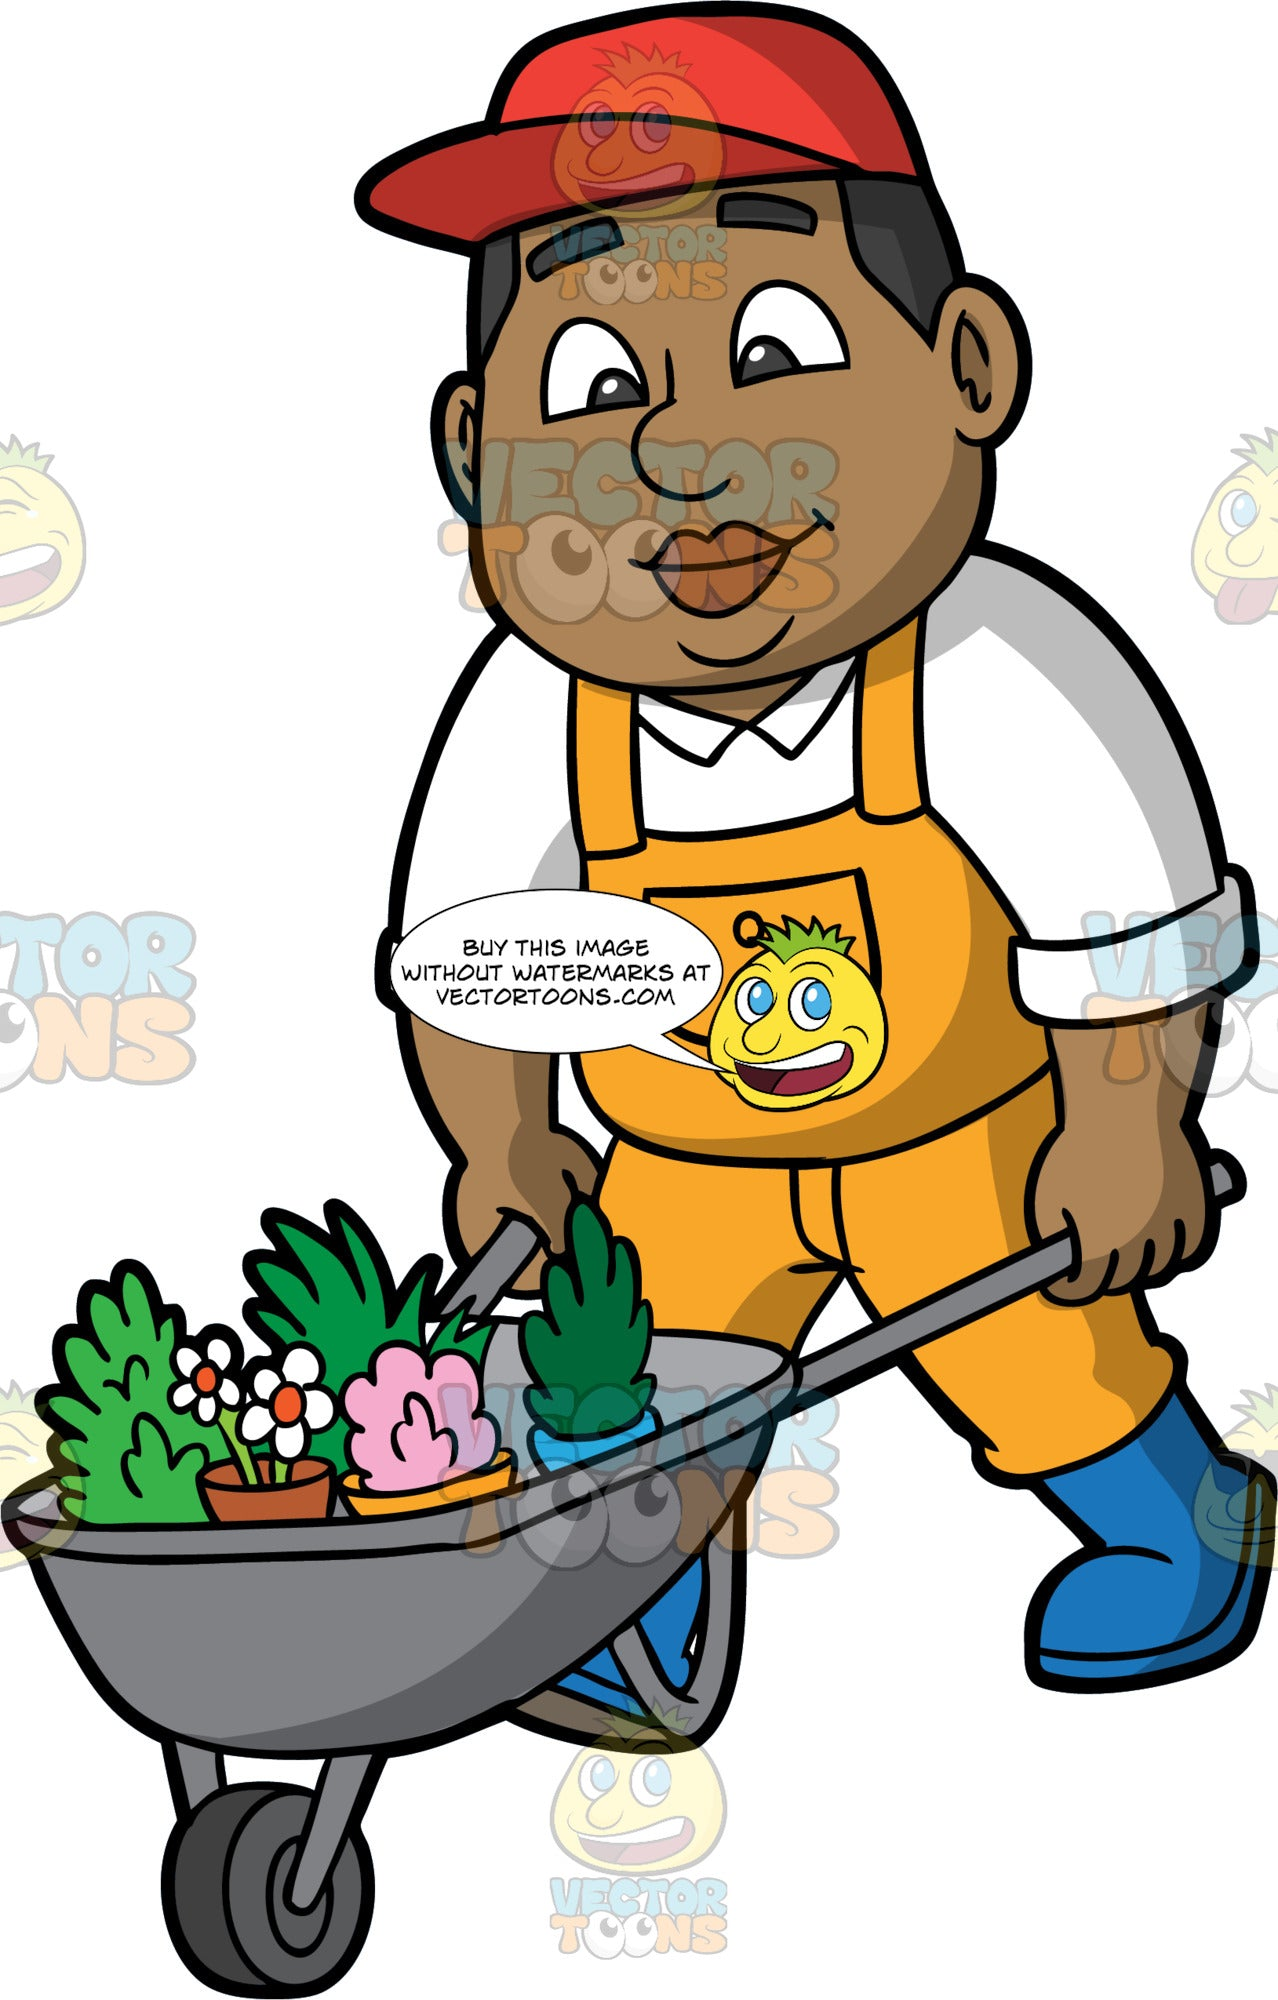 James Pushing A Wheelbarrow Filled With Plants. A Black man wearing yellow overalls over a white shirt, blue boots, and a red hat, pushing a metal wheelbarrow full of a variety of plants